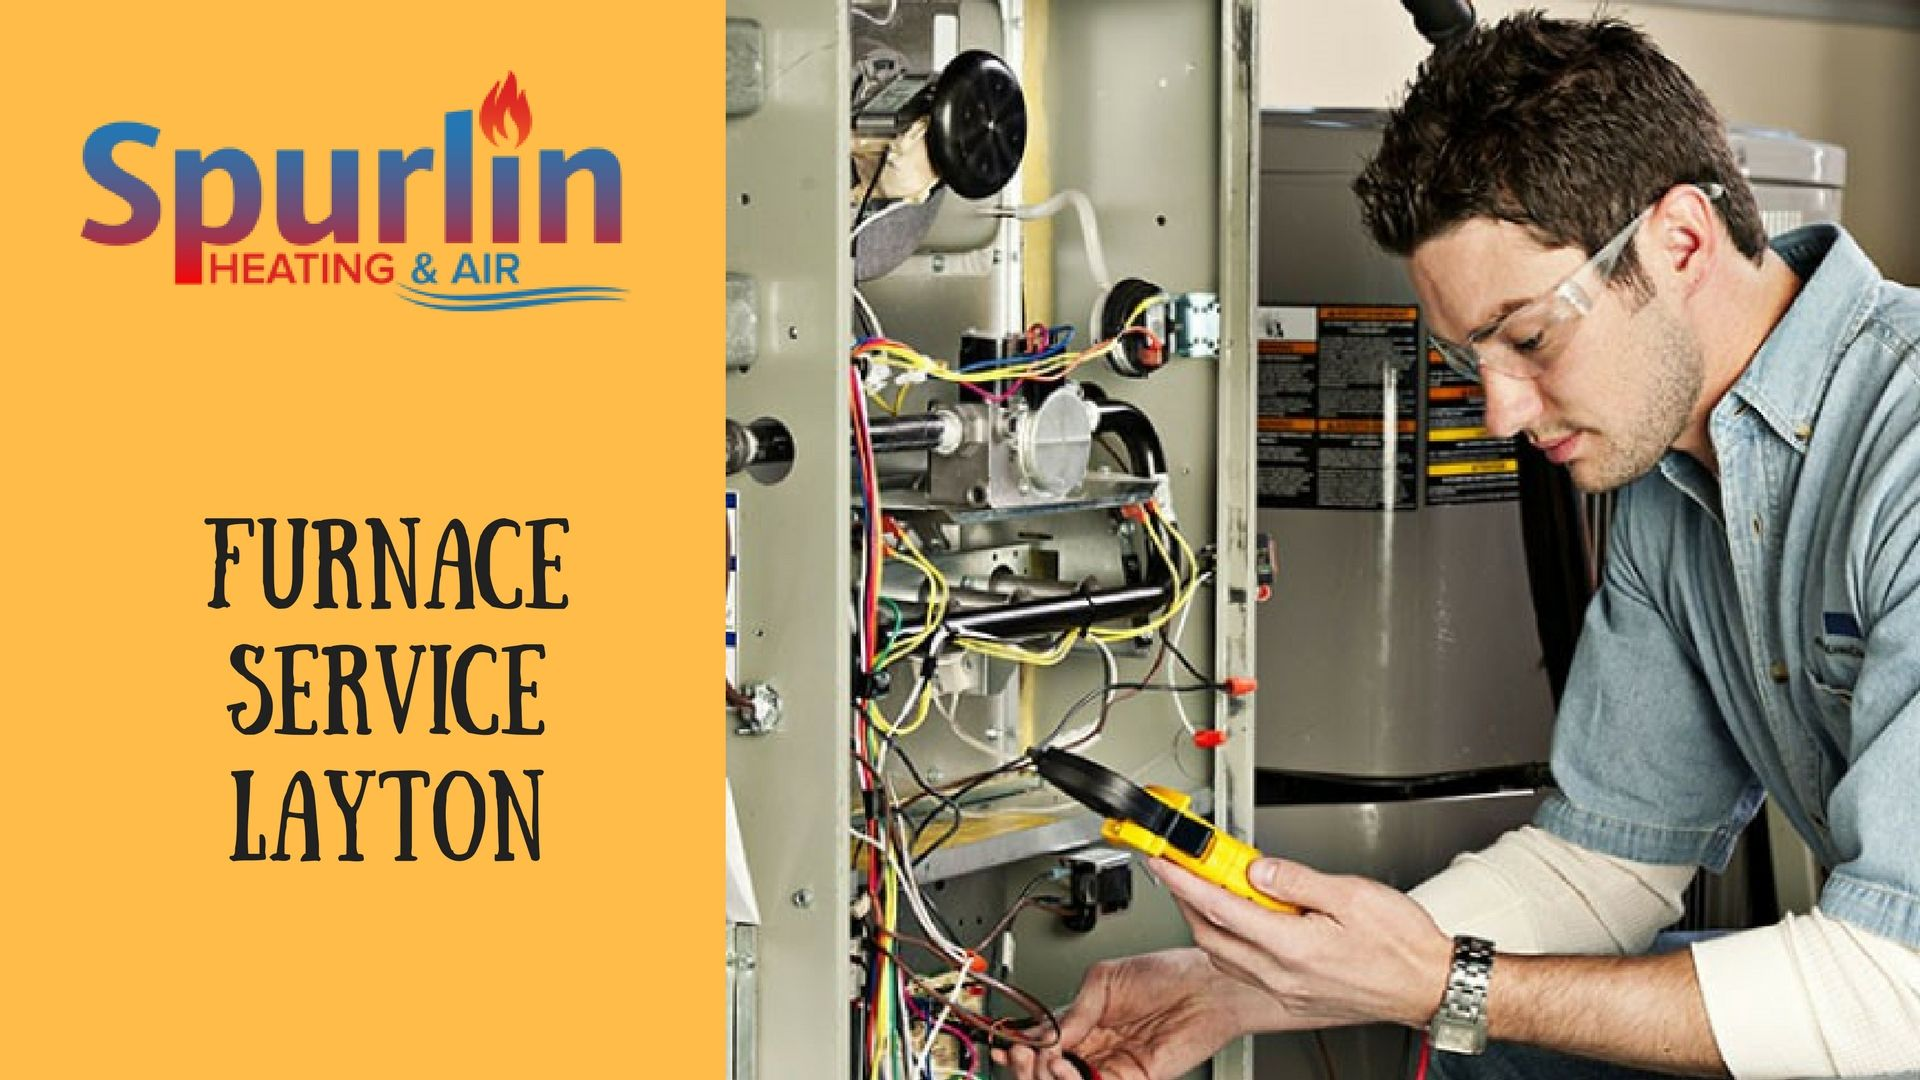 Need Help With Furnace Service Layton In Salt Lake City Stop